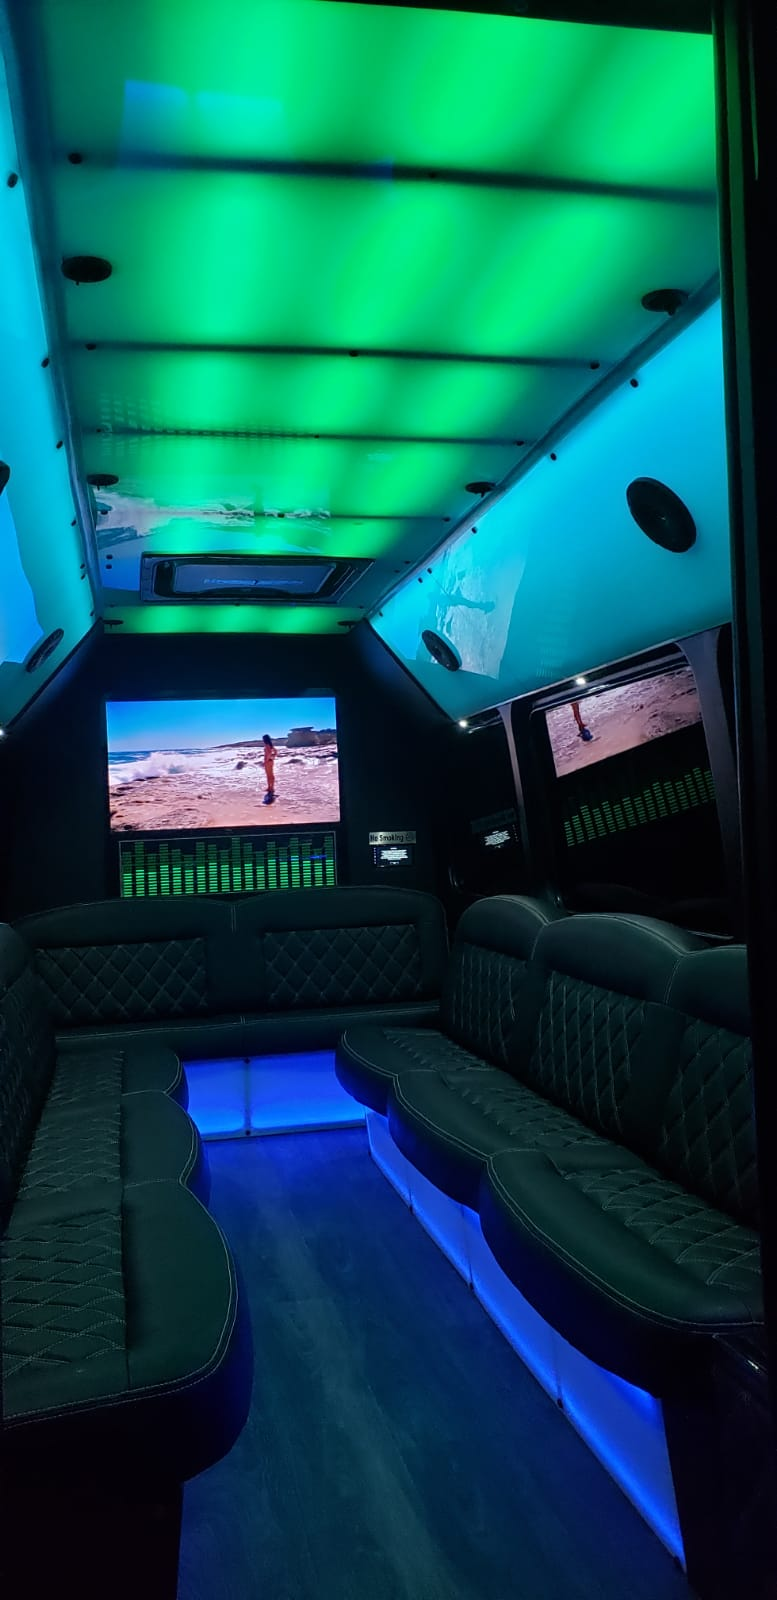 10-14 PASSENGERS PARTY BUS - Inside Led Colors Green